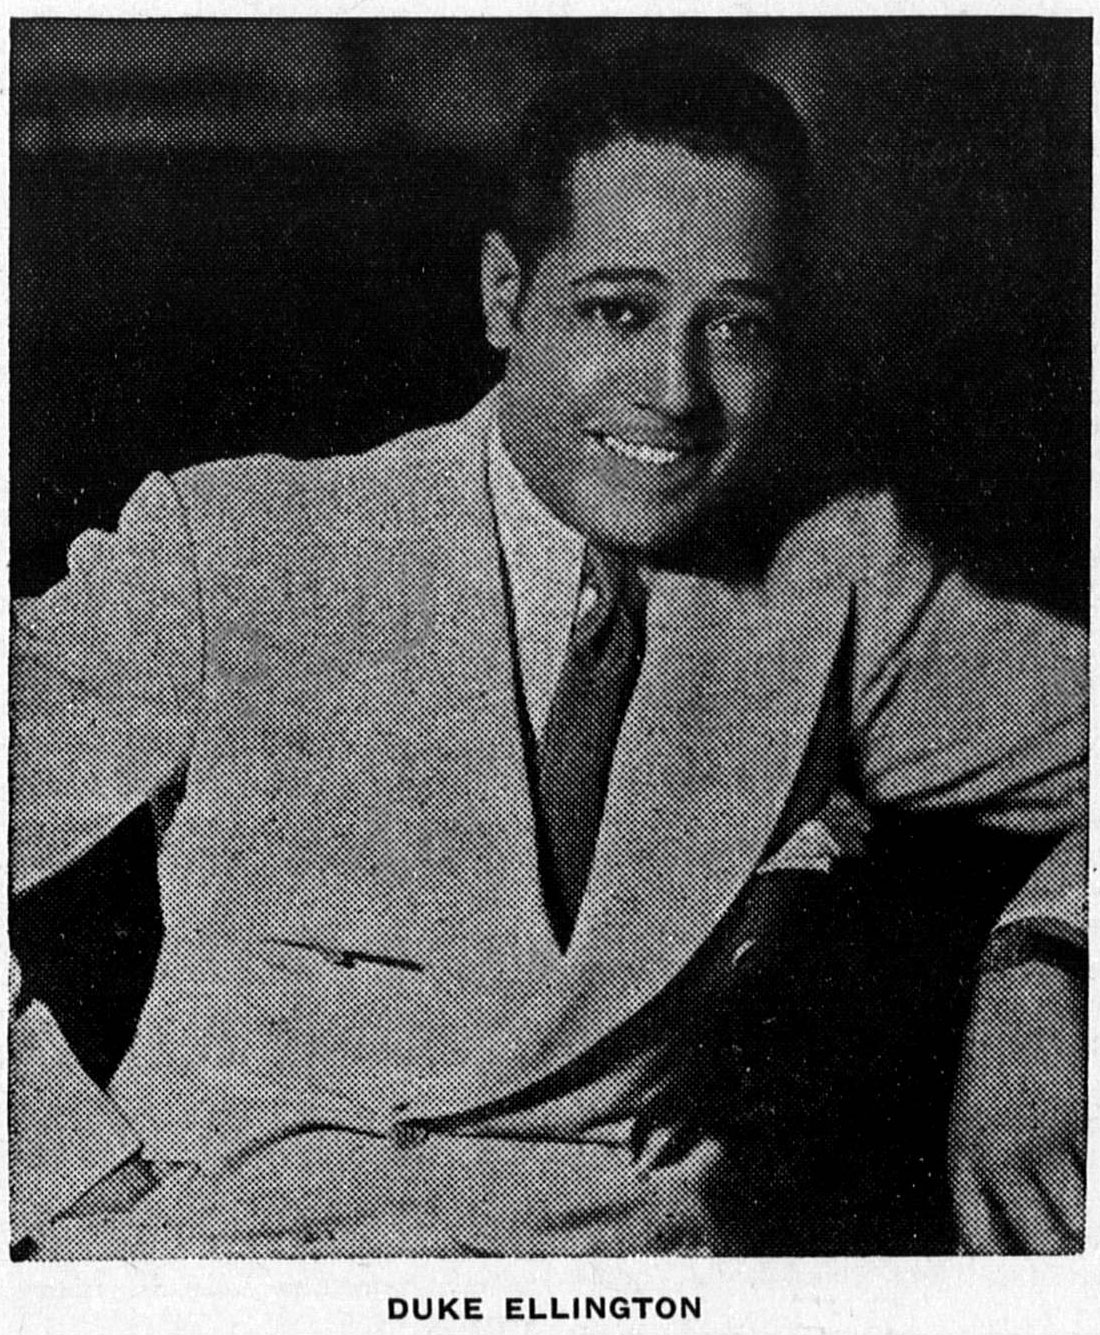 Duke Ellington in Buffalo, NY - 1943